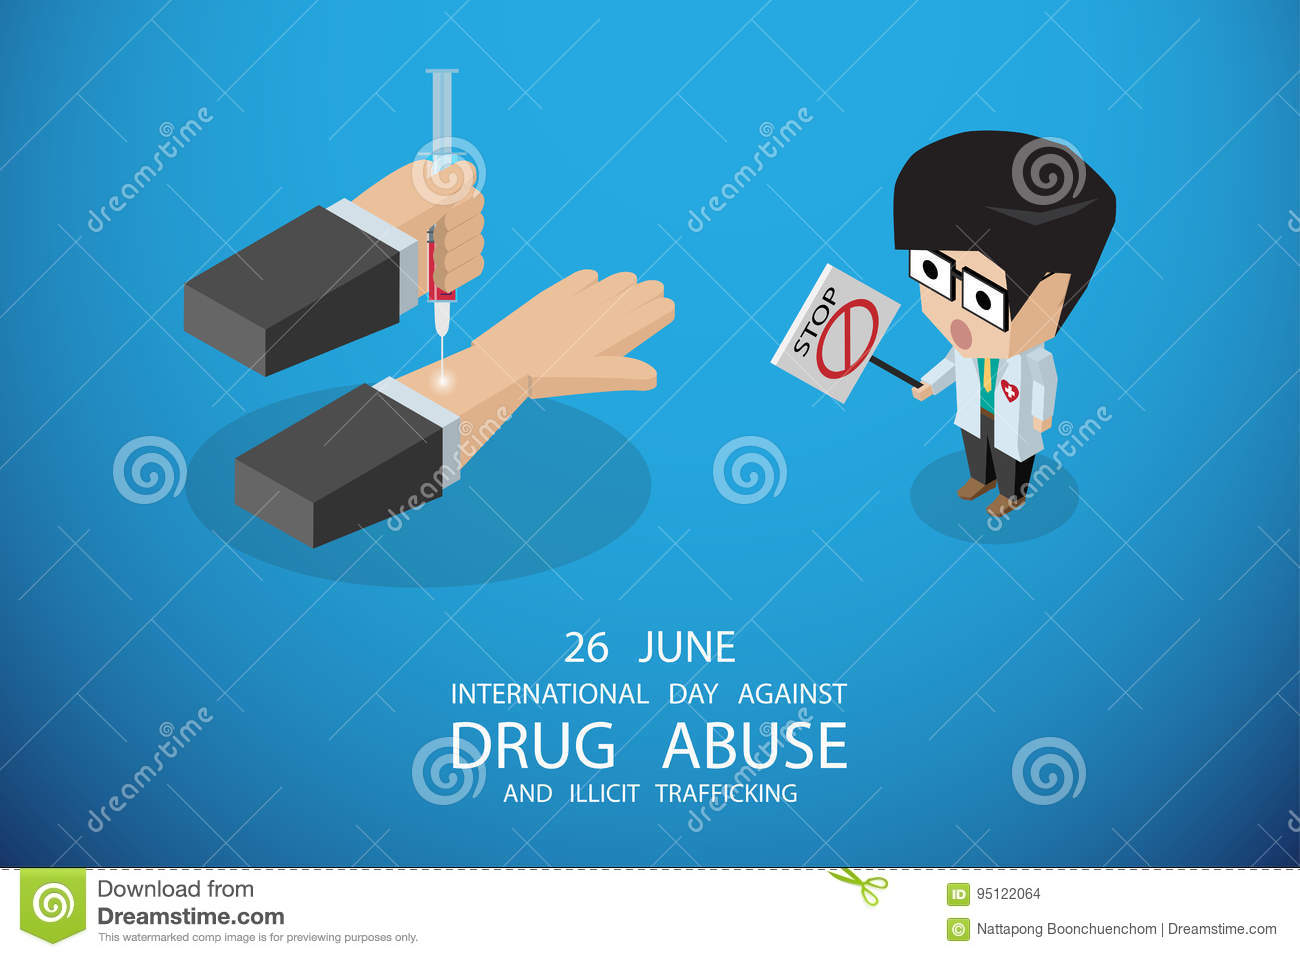 Isometric international day against drug abuse and illicit trafficking, vector illustration